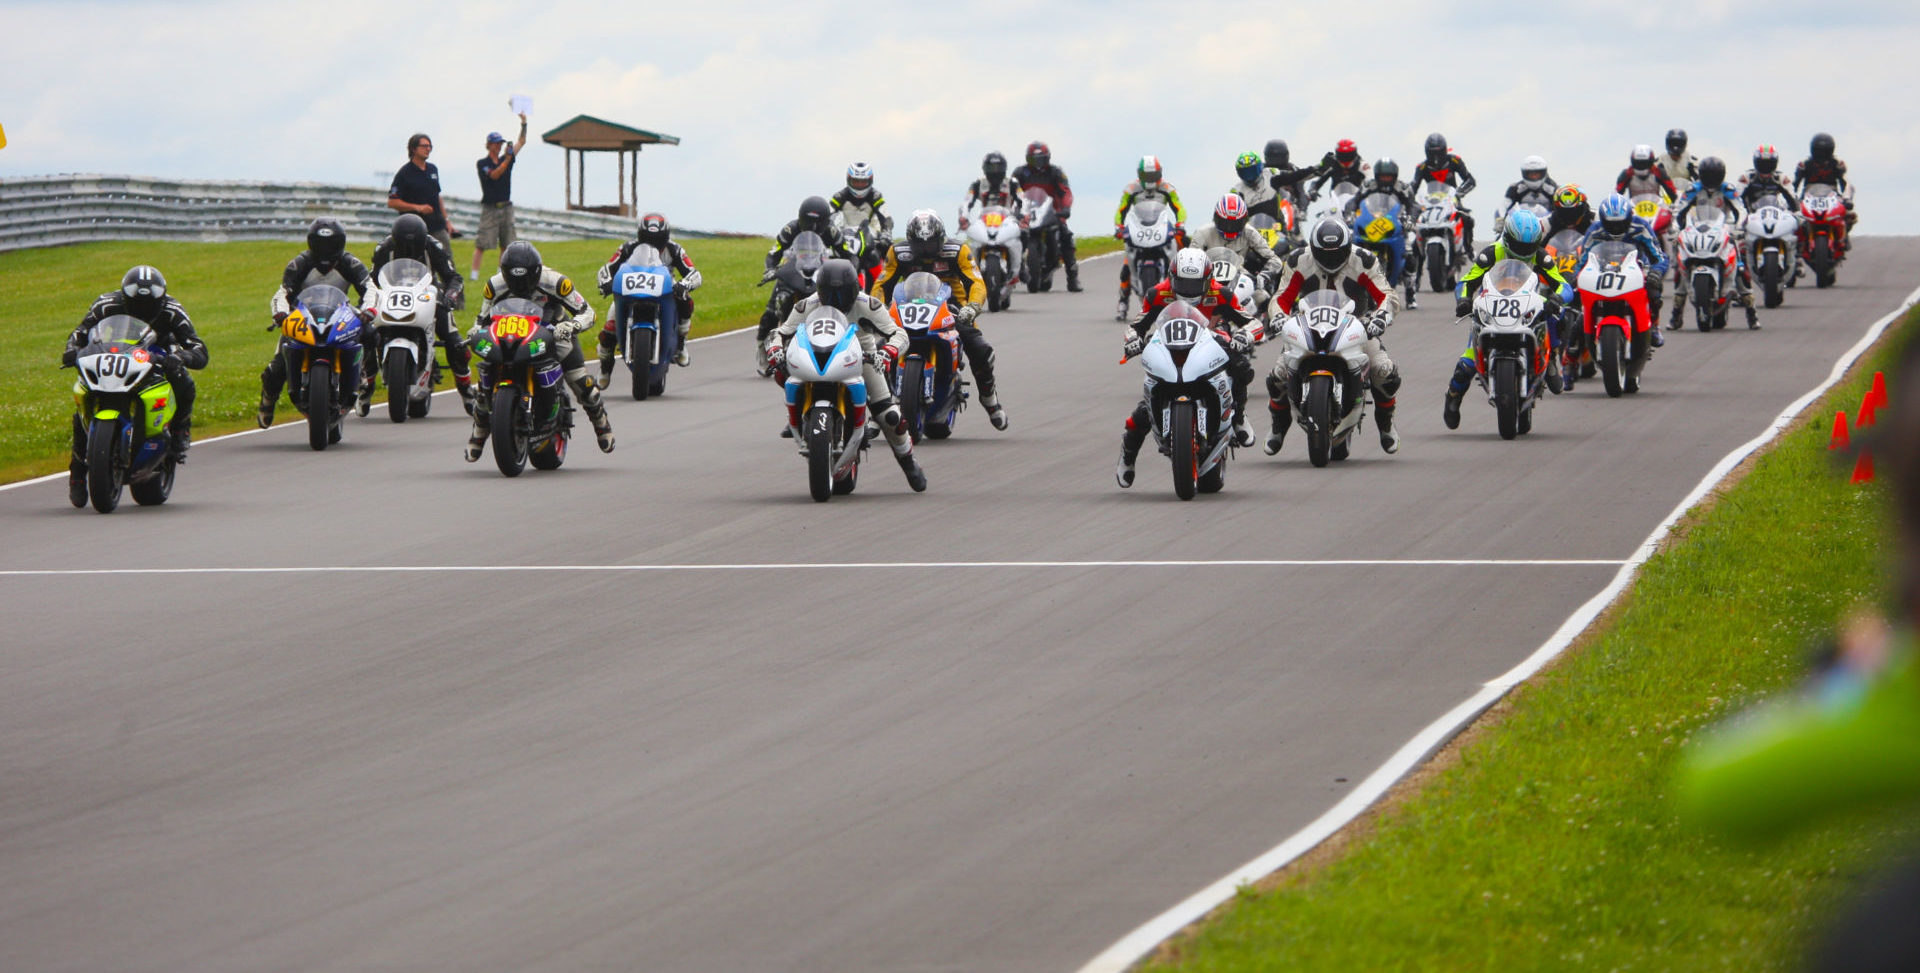 The starting grid of an N2/WERA National Endurance race. Photo courtesy N2 Track Days.